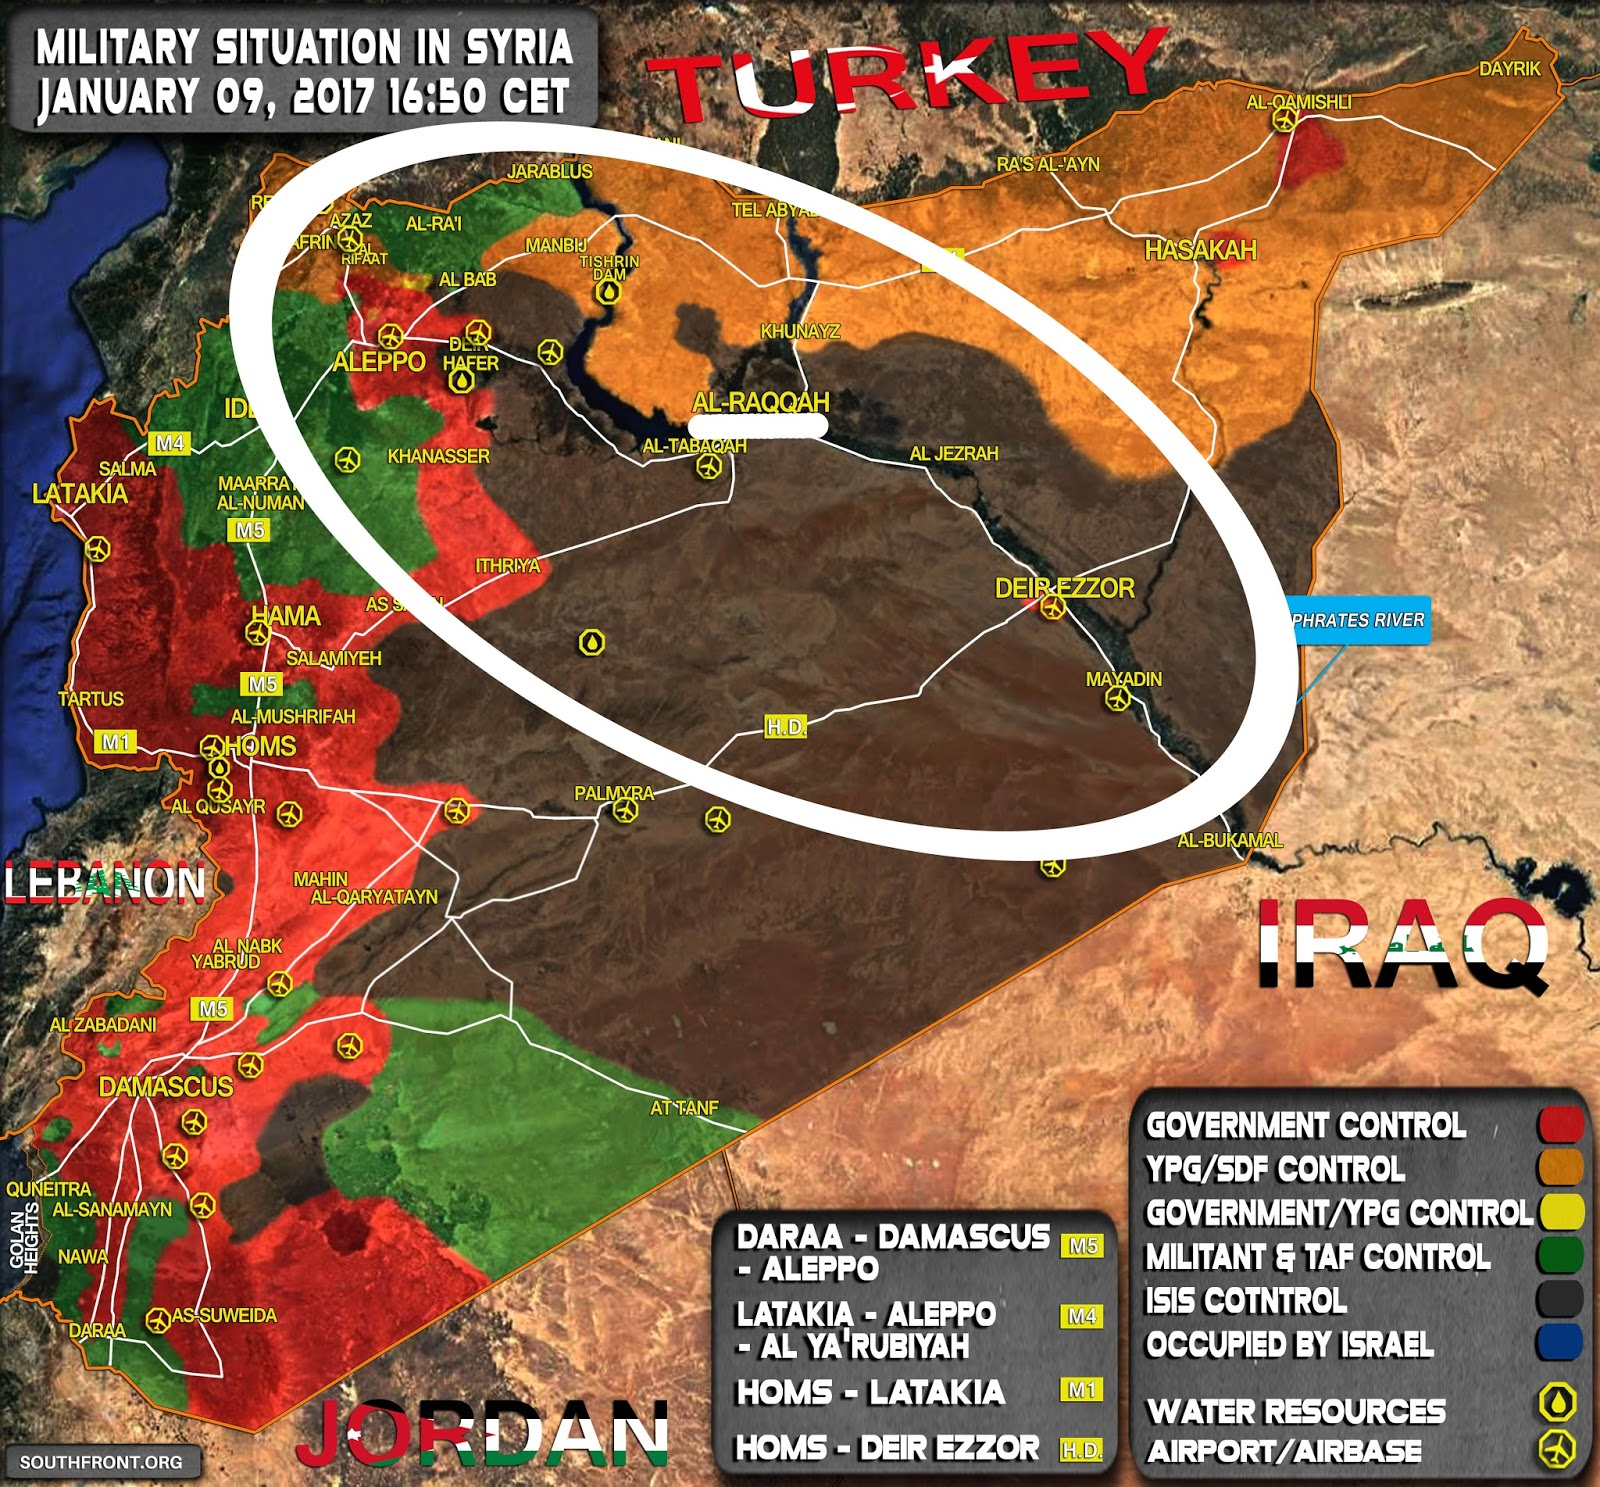 miles see map below al raqqah sits approximately in the middle most planners believe that taking al raqqah is the key to defeating isis in syria